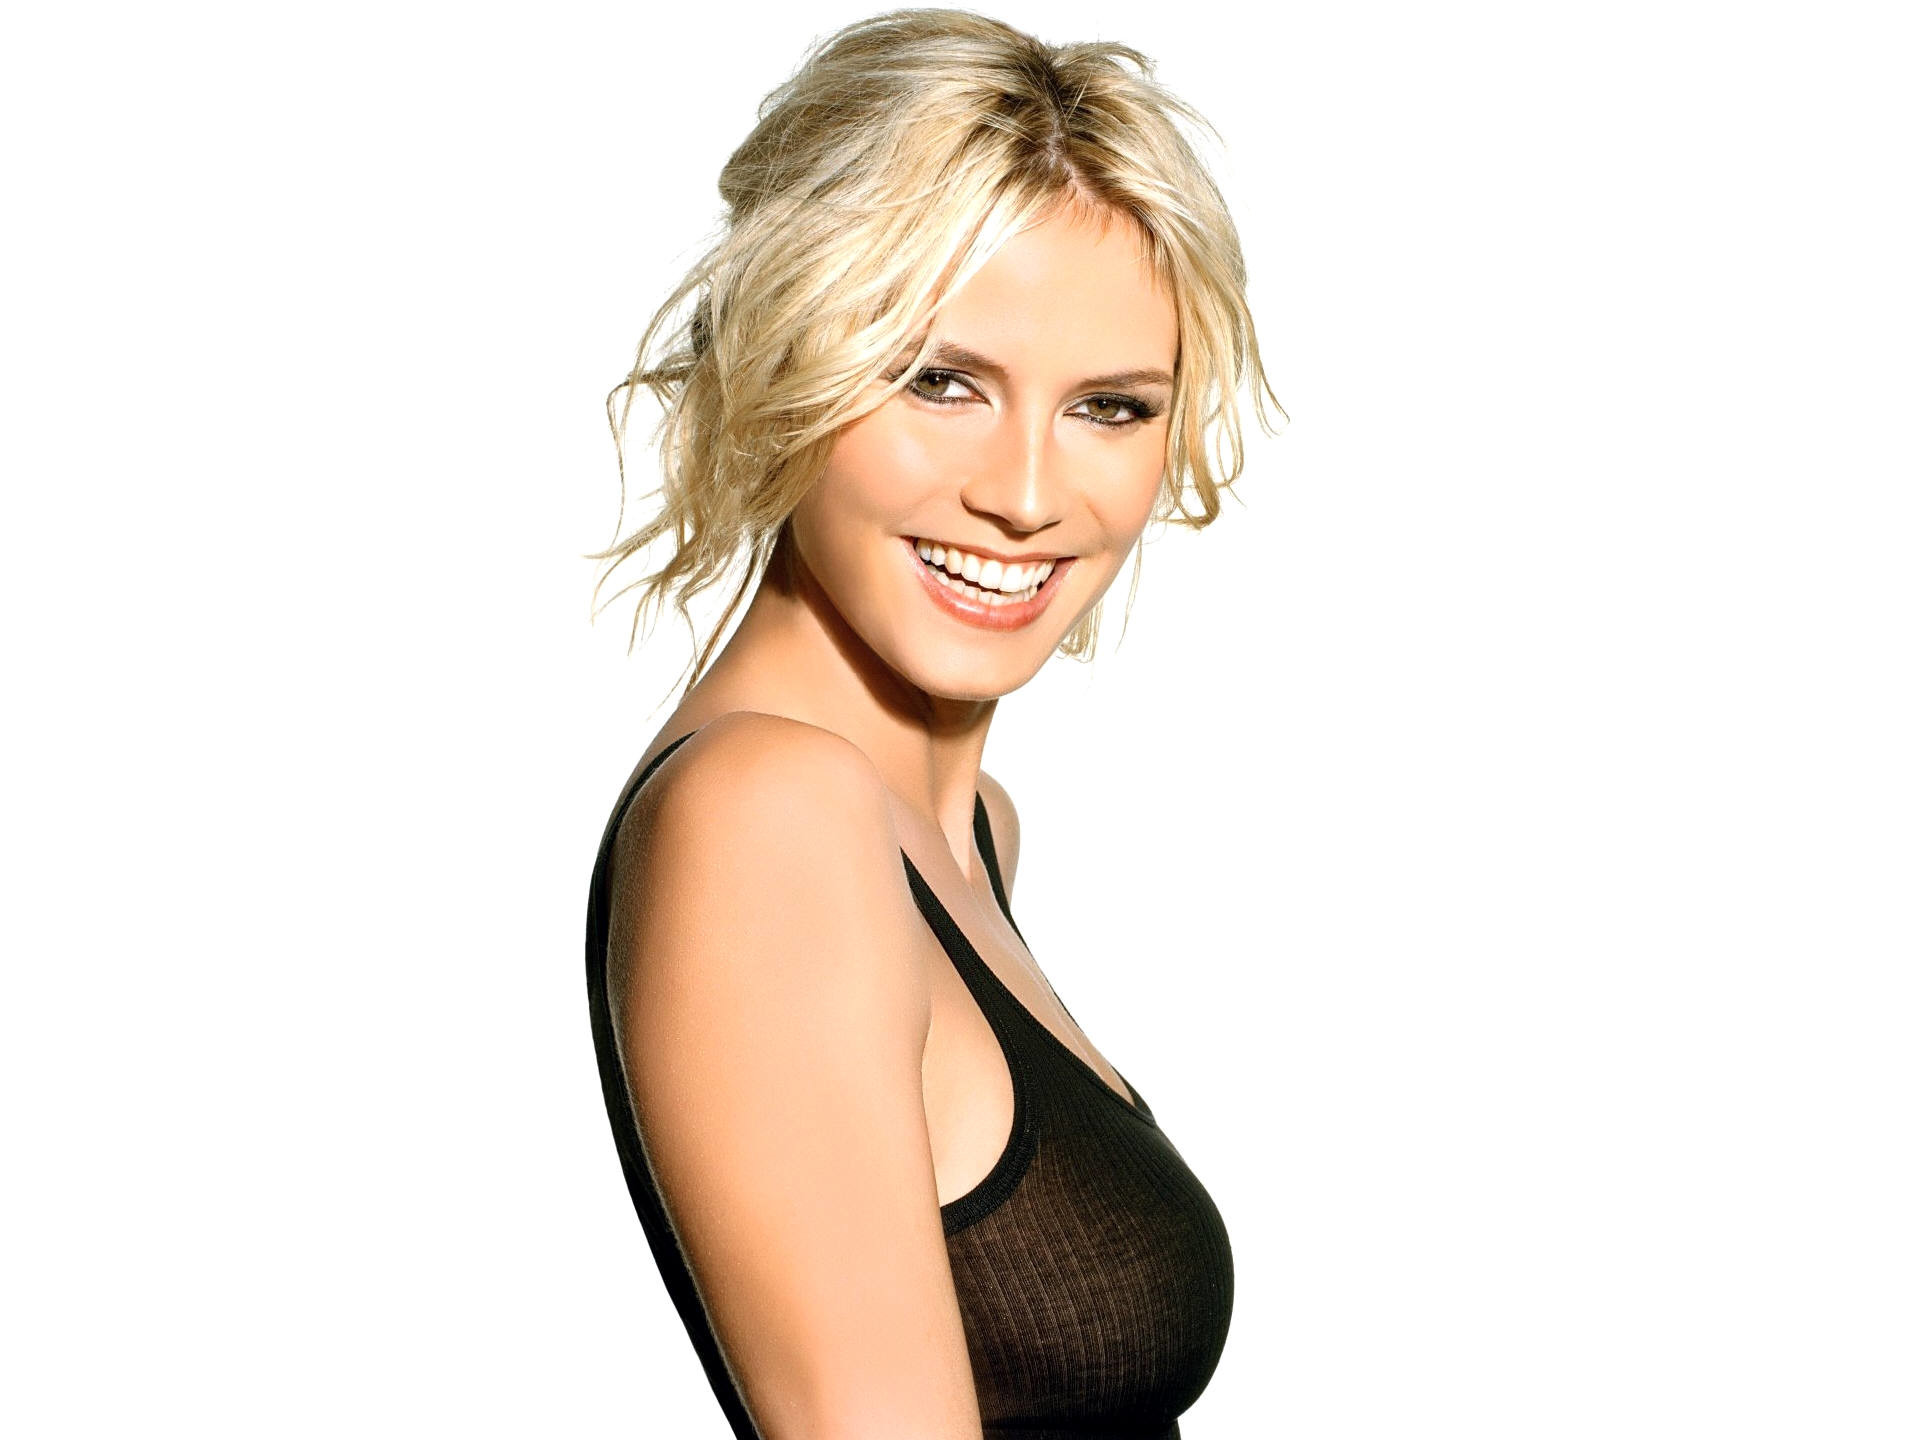 1920x1440 Heidi Klum Beautiful Smile  wallpaper